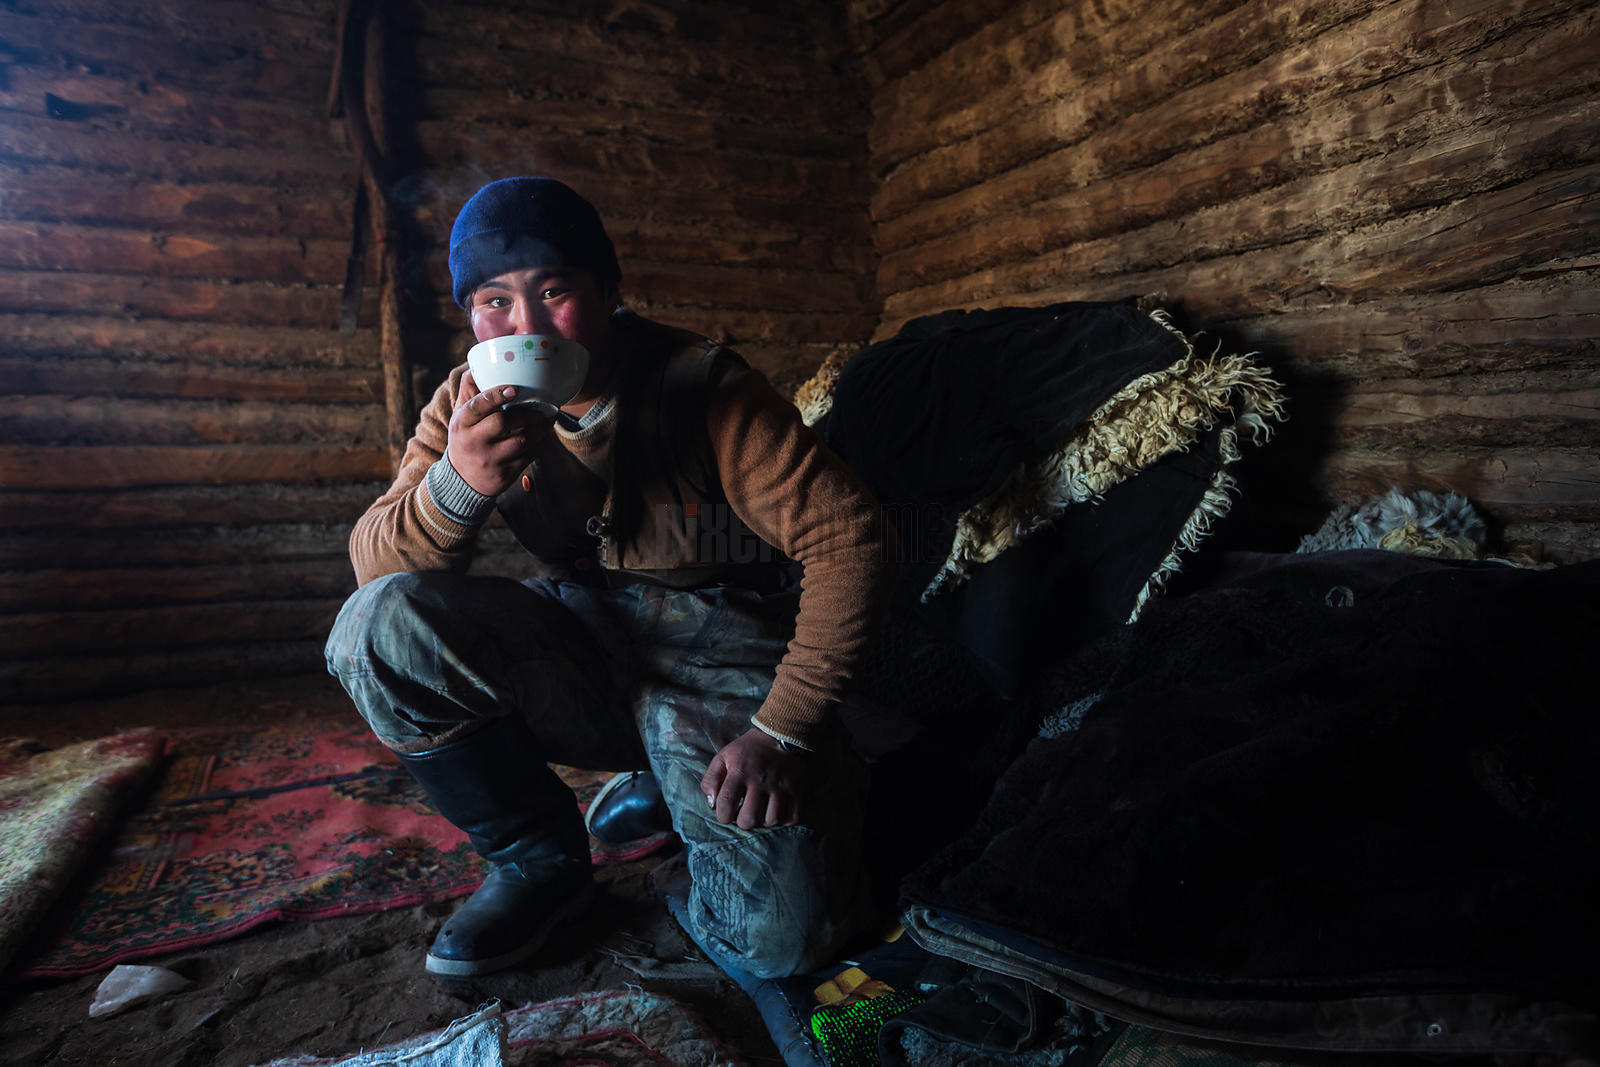 Drinking Tea after a Long Day on the Migration Trail.